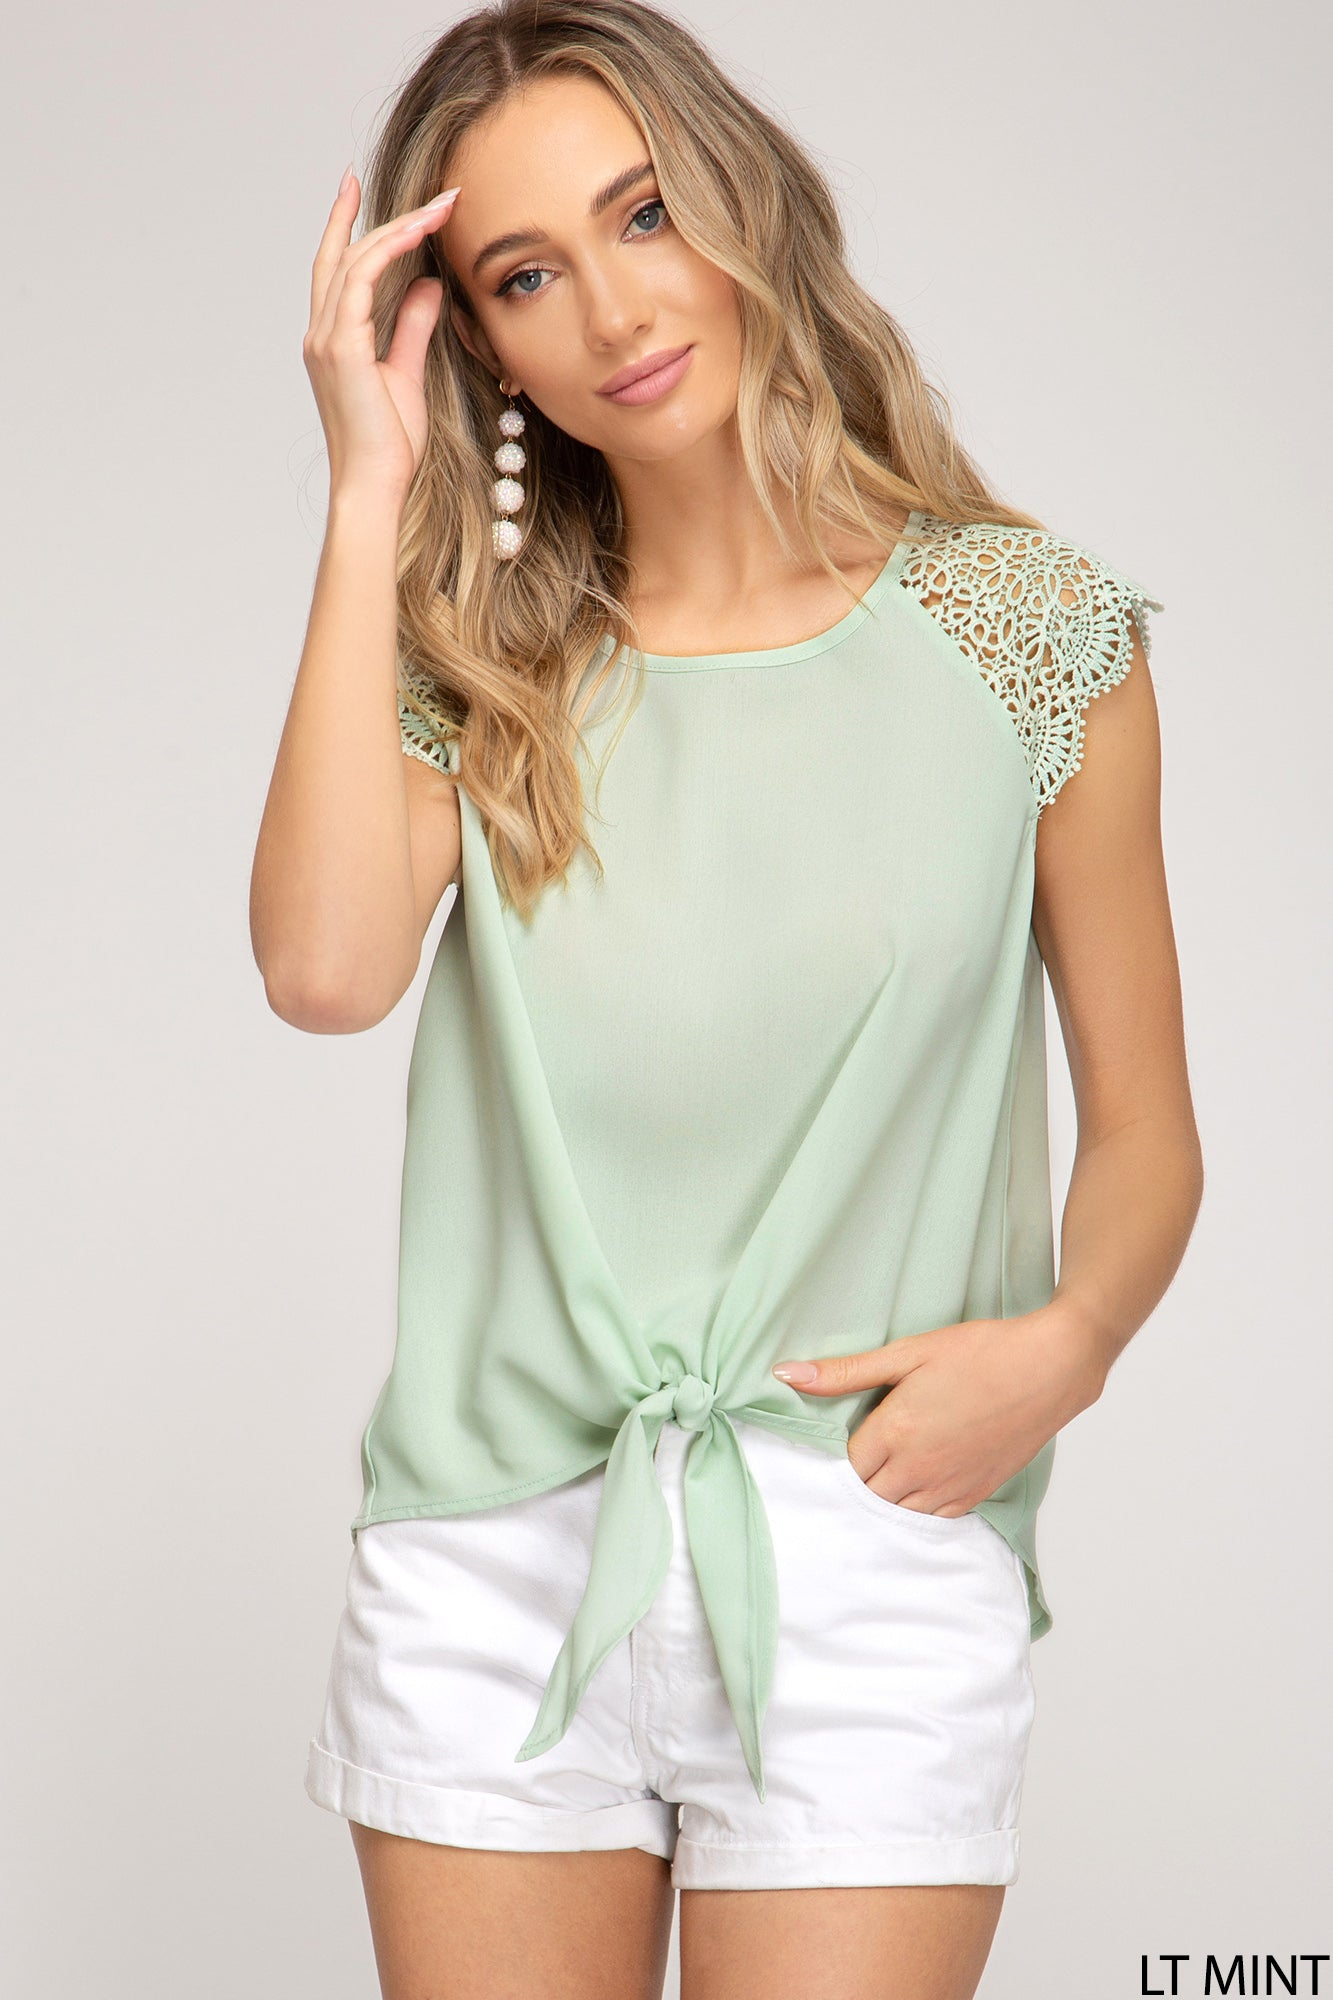 SCALLOPED LACE SLEEVE WOVEN TOP WITH FRONT TIE DETAILS